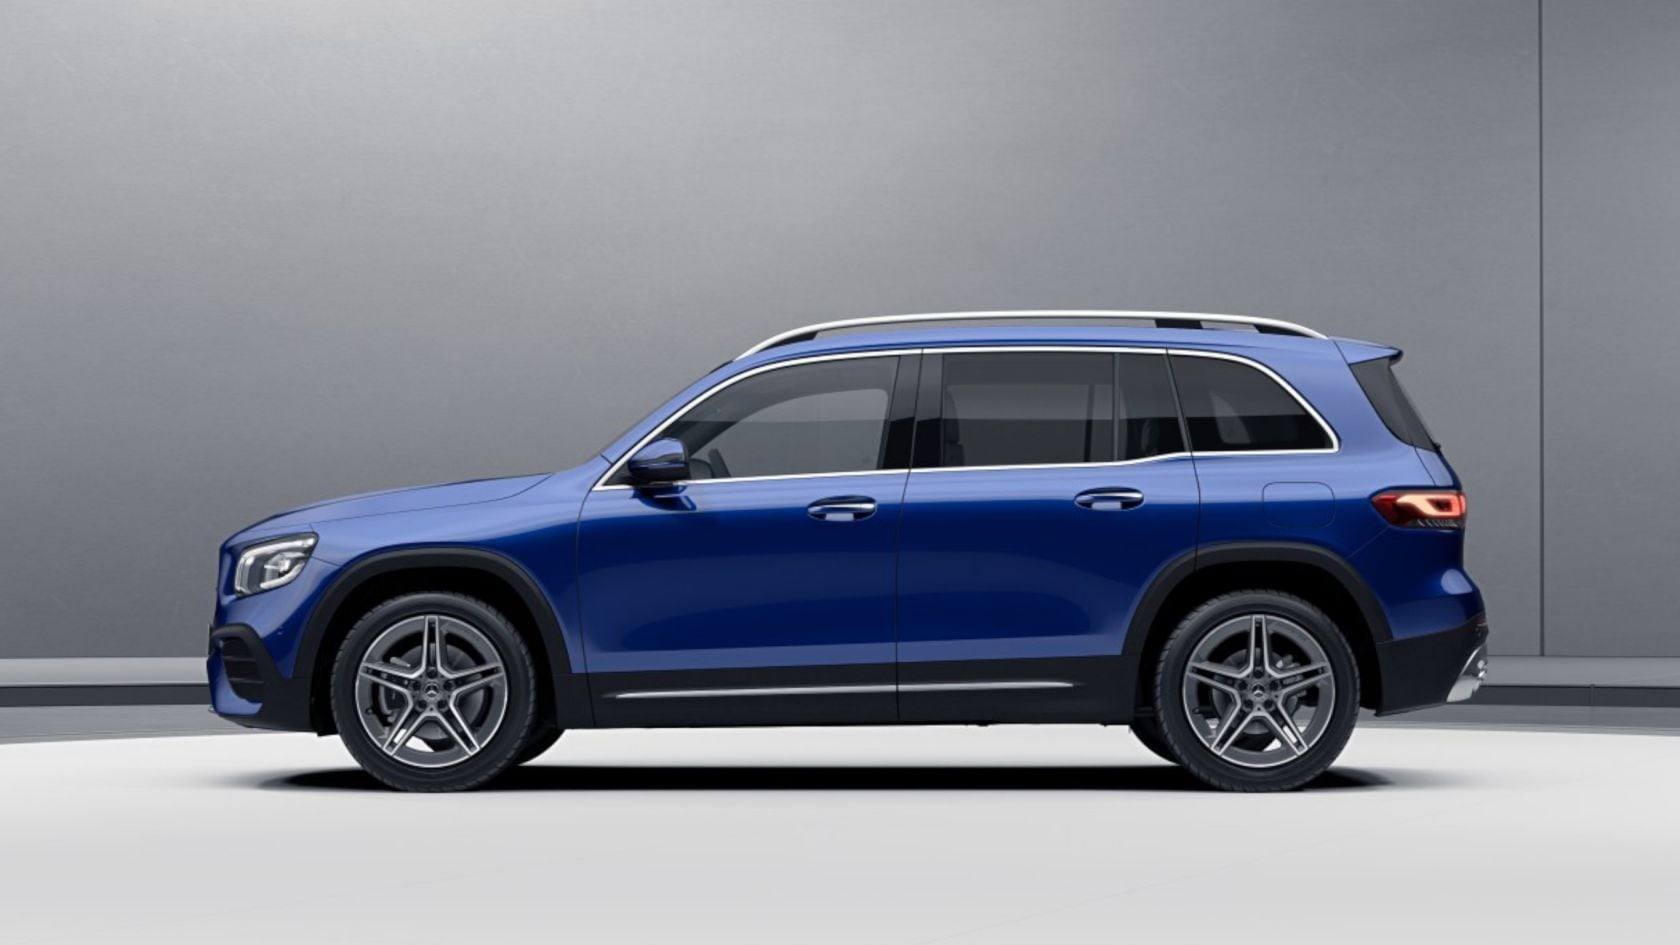 Mercedes Benz Glb Models And Prices